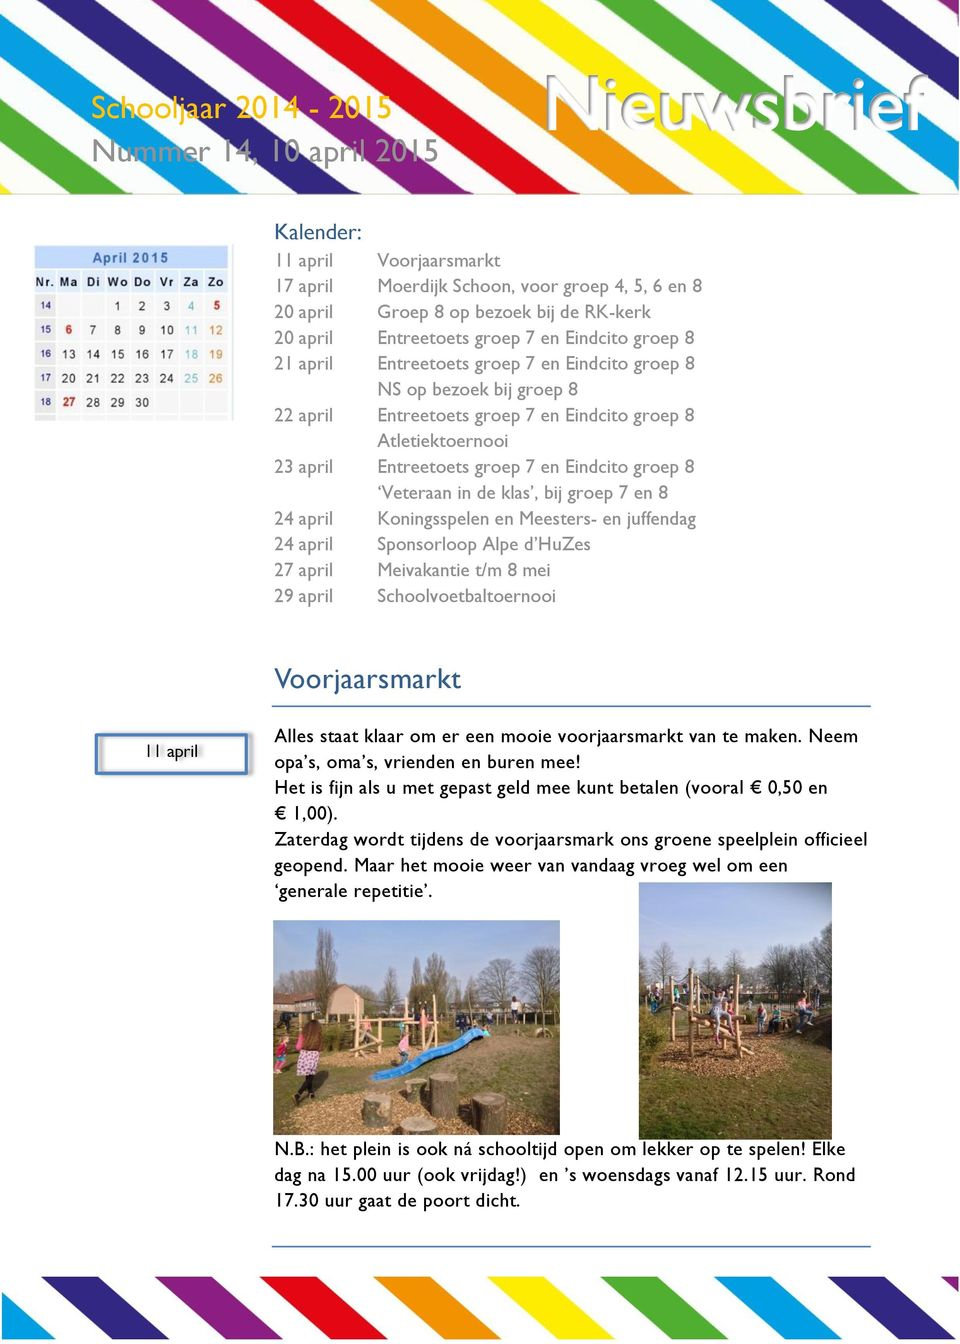 Eindcito groep 8 Veteraan in de klas, bij groep 7 en 8 24 april Koningsspelen en Meesters- en juffendag 24 april Sponsorloop Alpe d HuZes 27 april Meivakantie t/m 8 mei 29 april Schoolvoetbaltoernooi